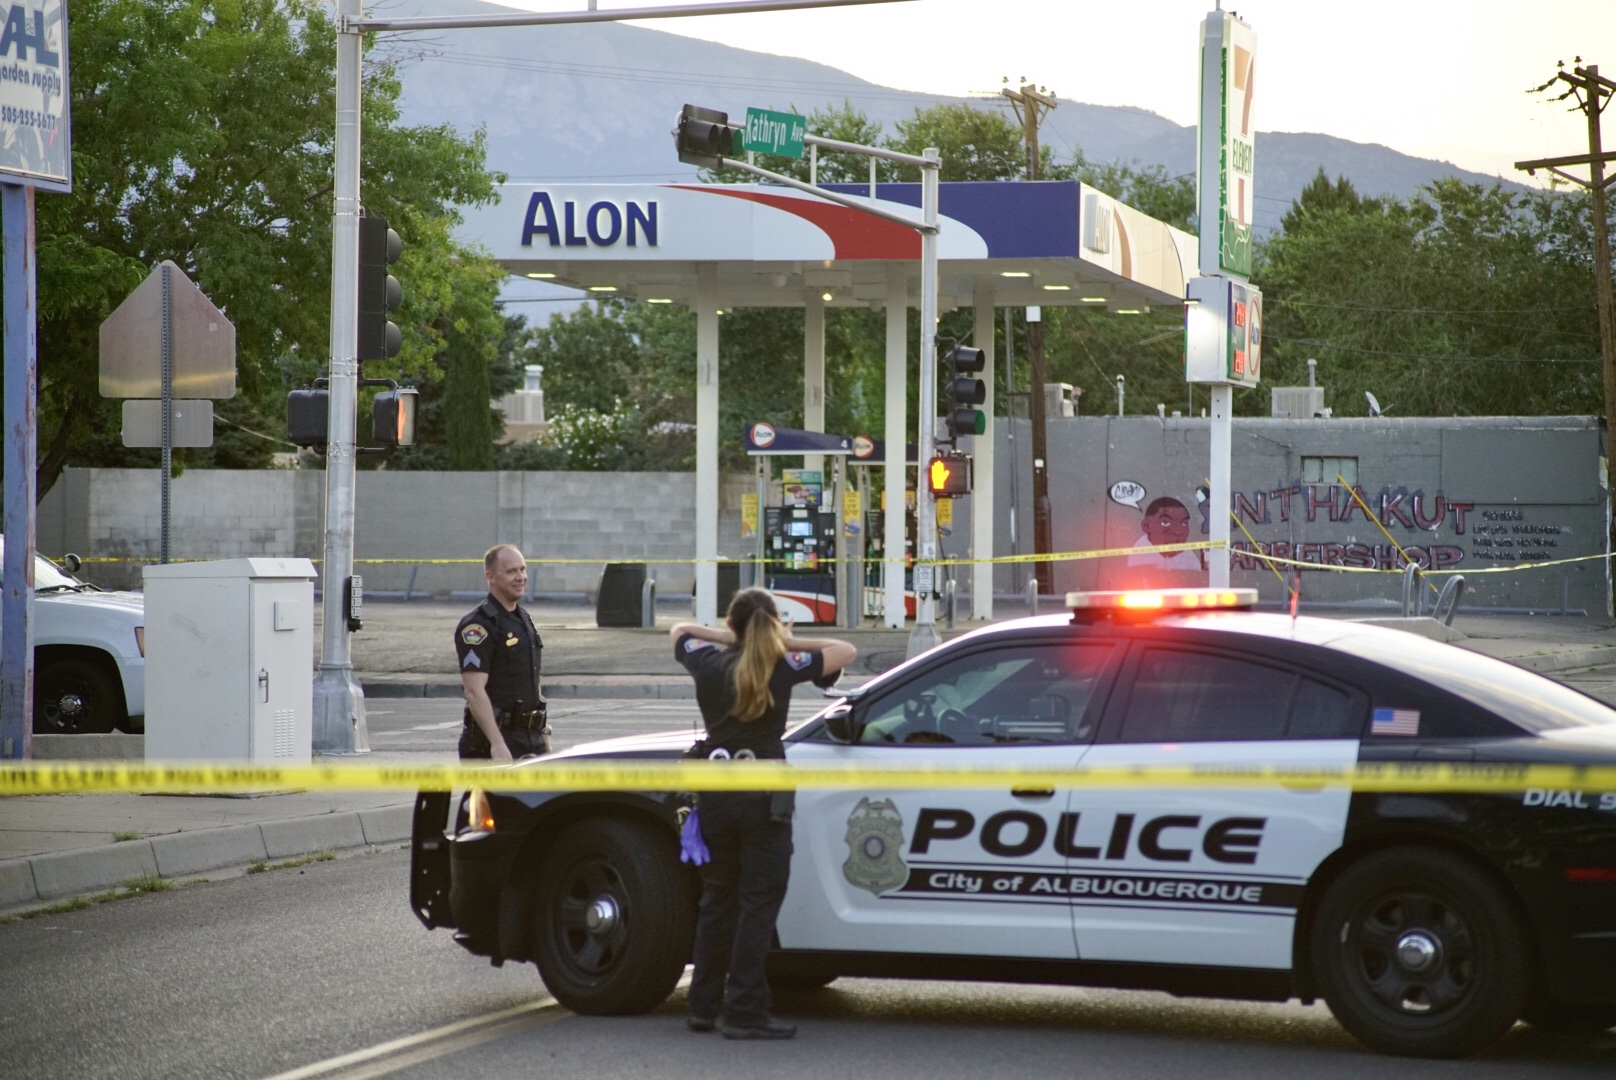 Breaking: APD investigating death in SE Albuquerque; motorists asked to avoid Kathryn/San Mateo